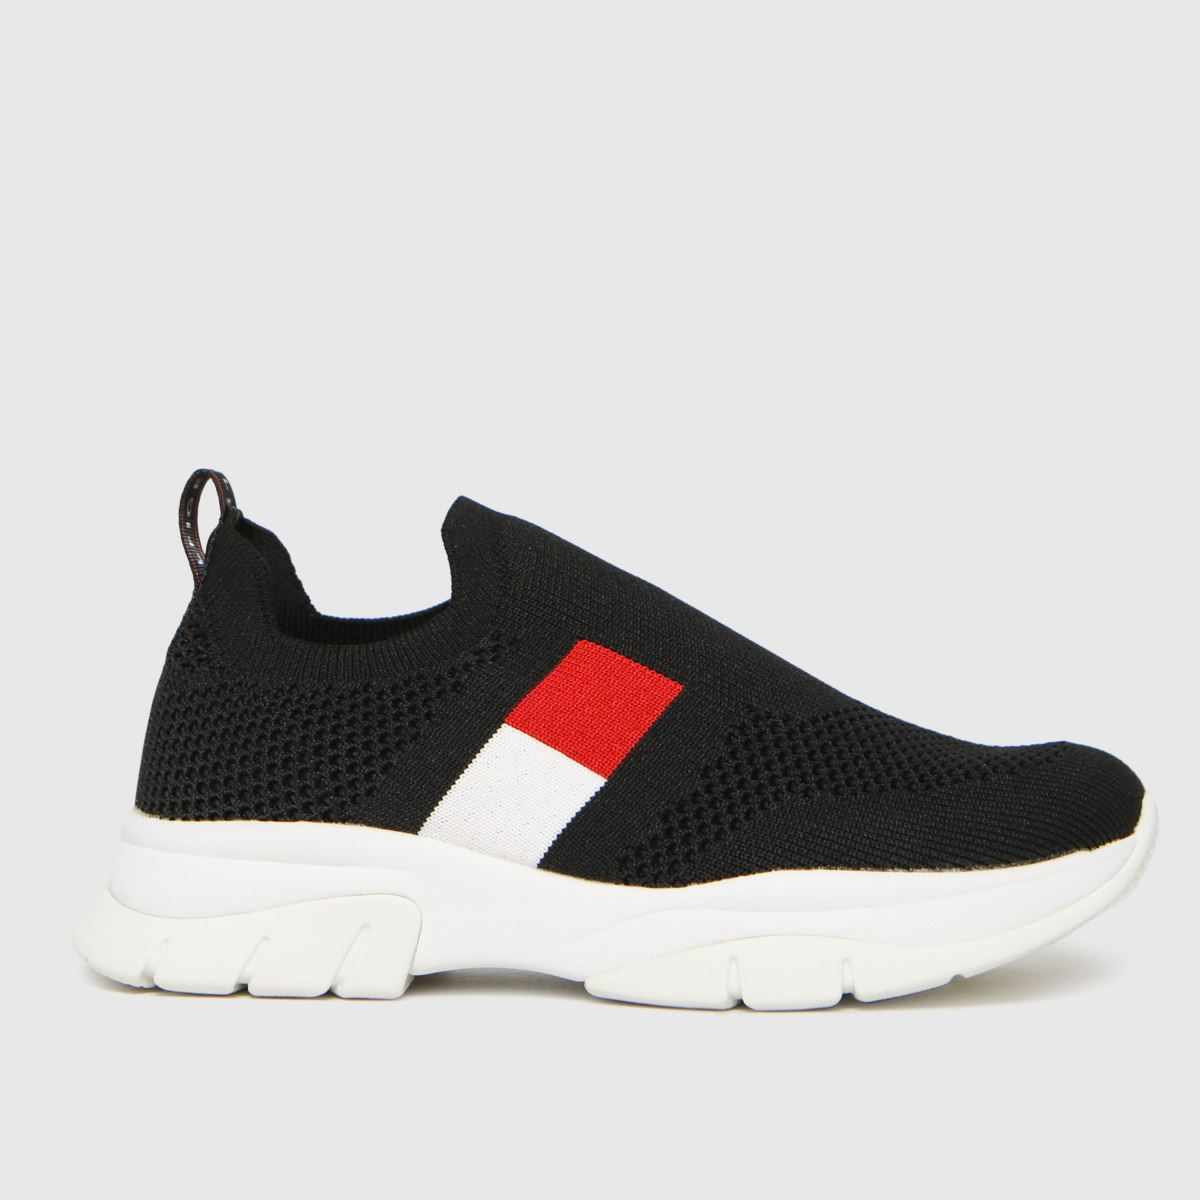 Tommy Hilfiger Black & Red Low Cut Sneaker Trainers Junior